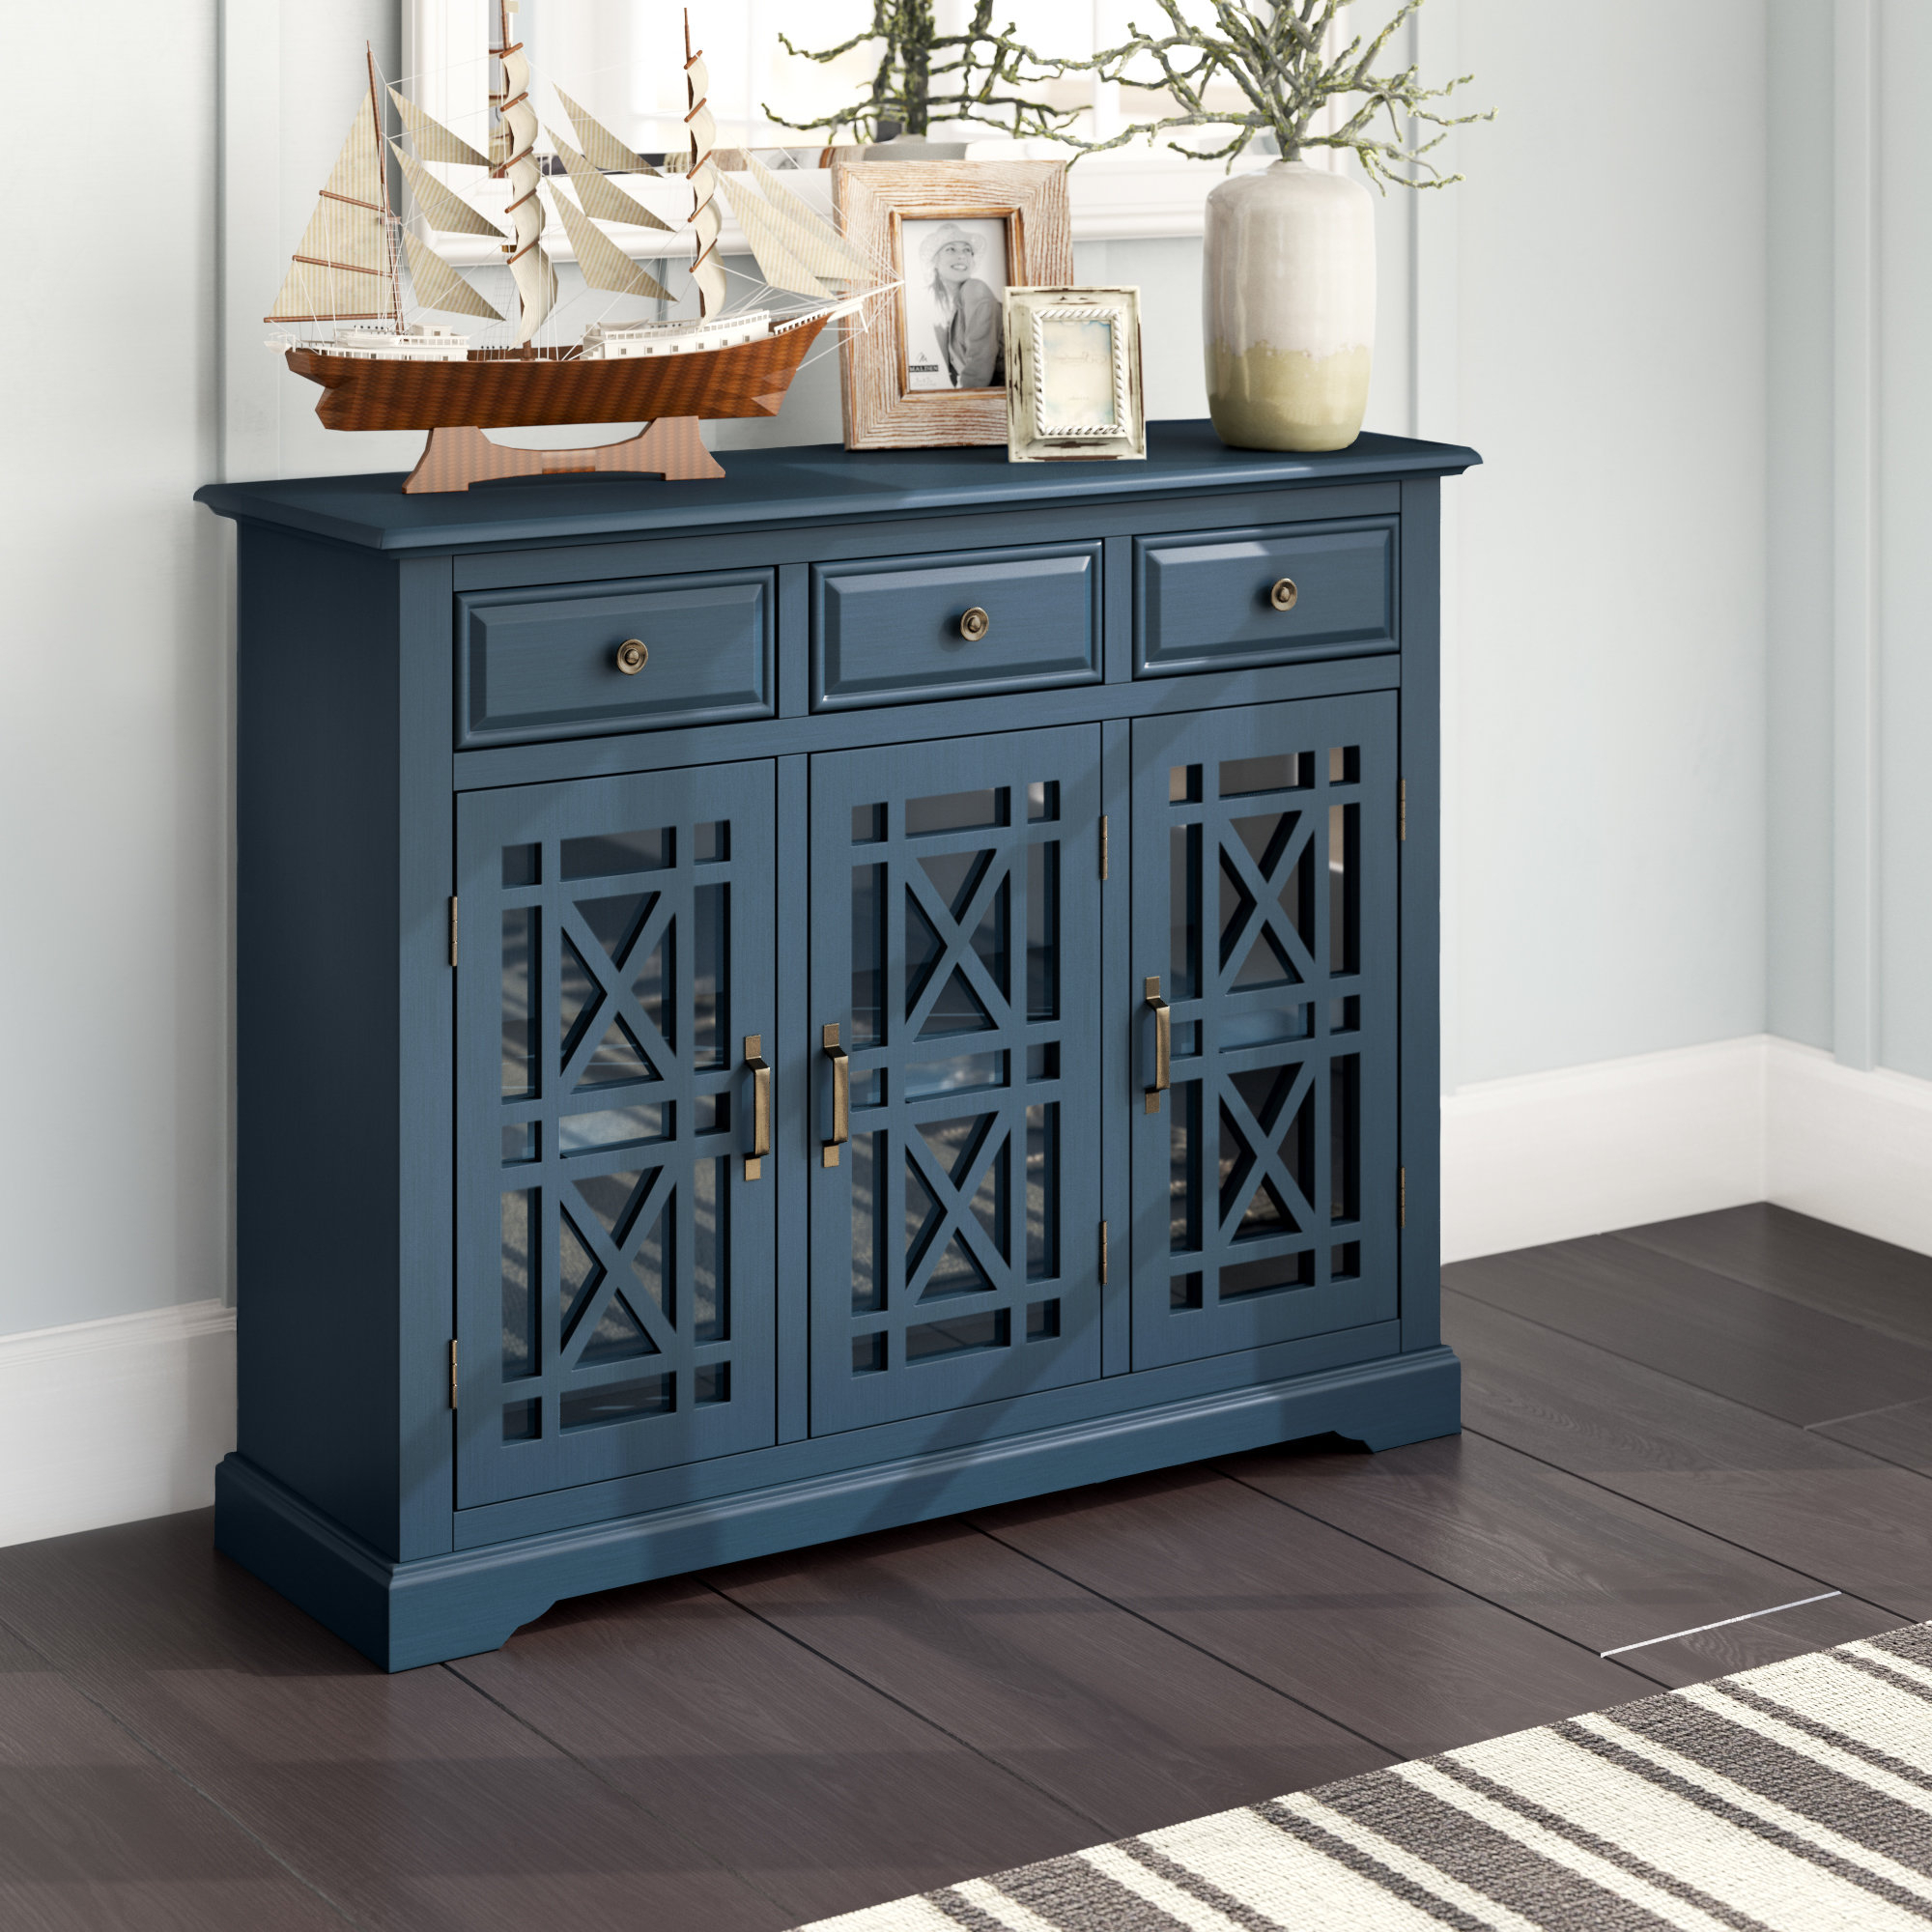 Breakwater Bay Winston Sideboard & Reviews | Wayfair For Knoxville Sideboards (View 7 of 20)